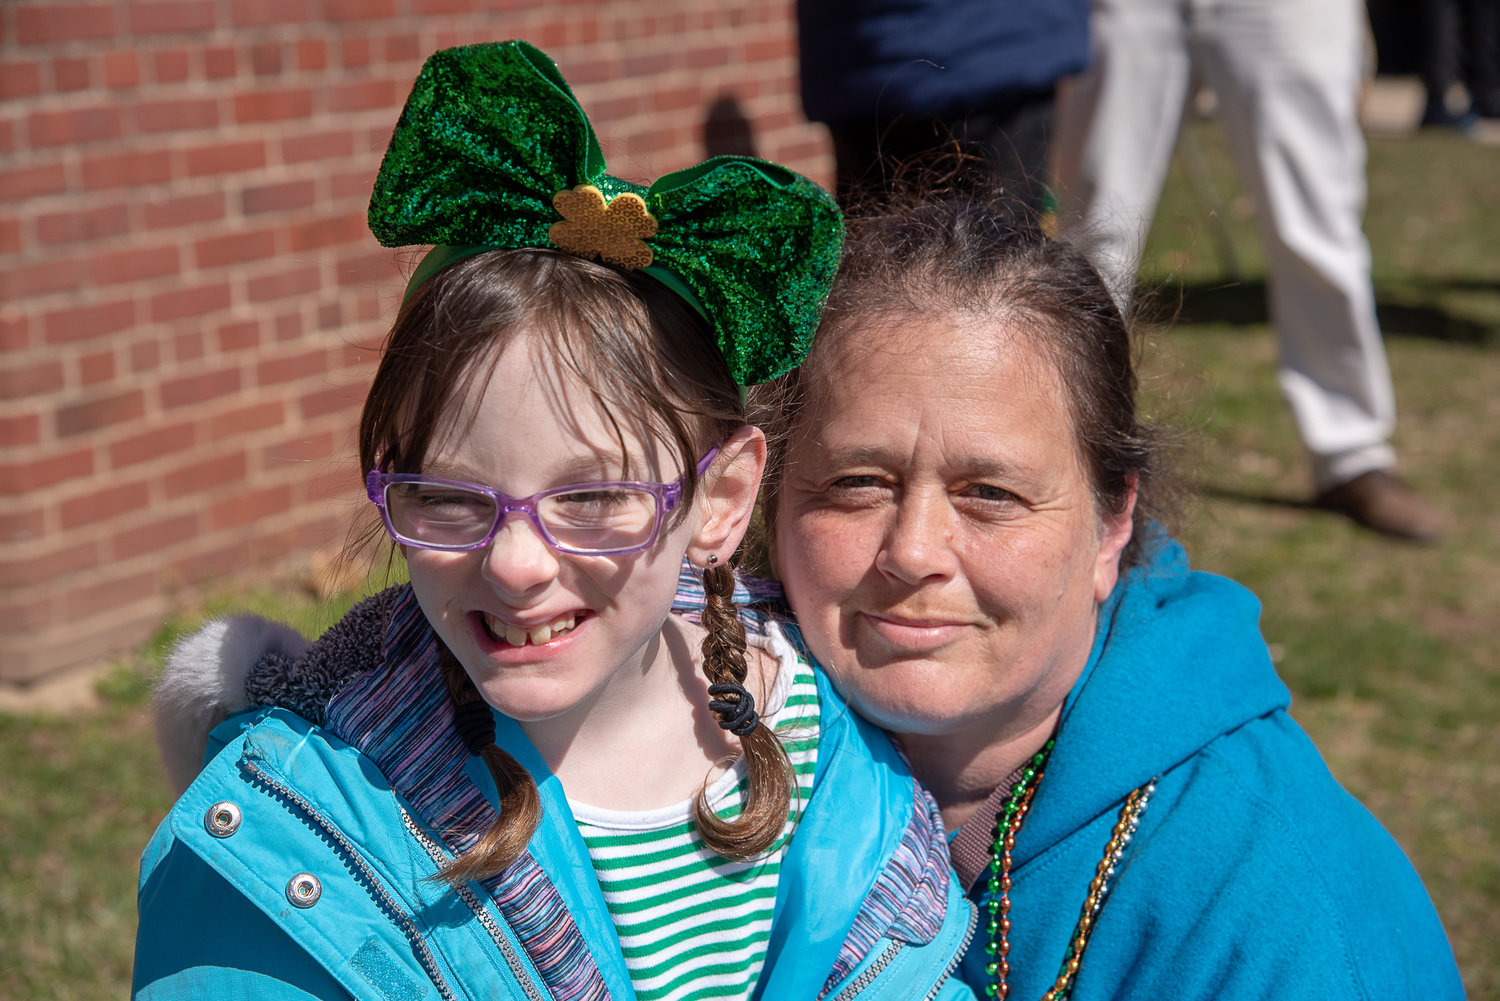 Brianna Hood and her mother, Donna, waited at Finley Middle School for the cannon shot that signaled the start of the parade.